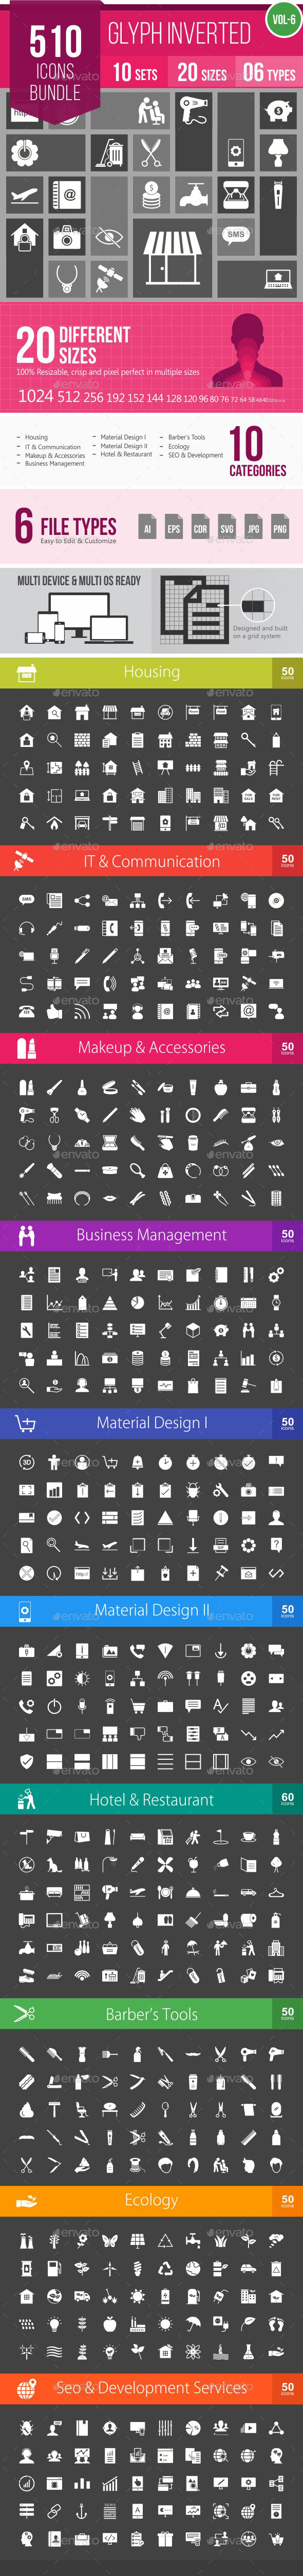 510 Vector Inverted Glyph Icons Bundle - Icons